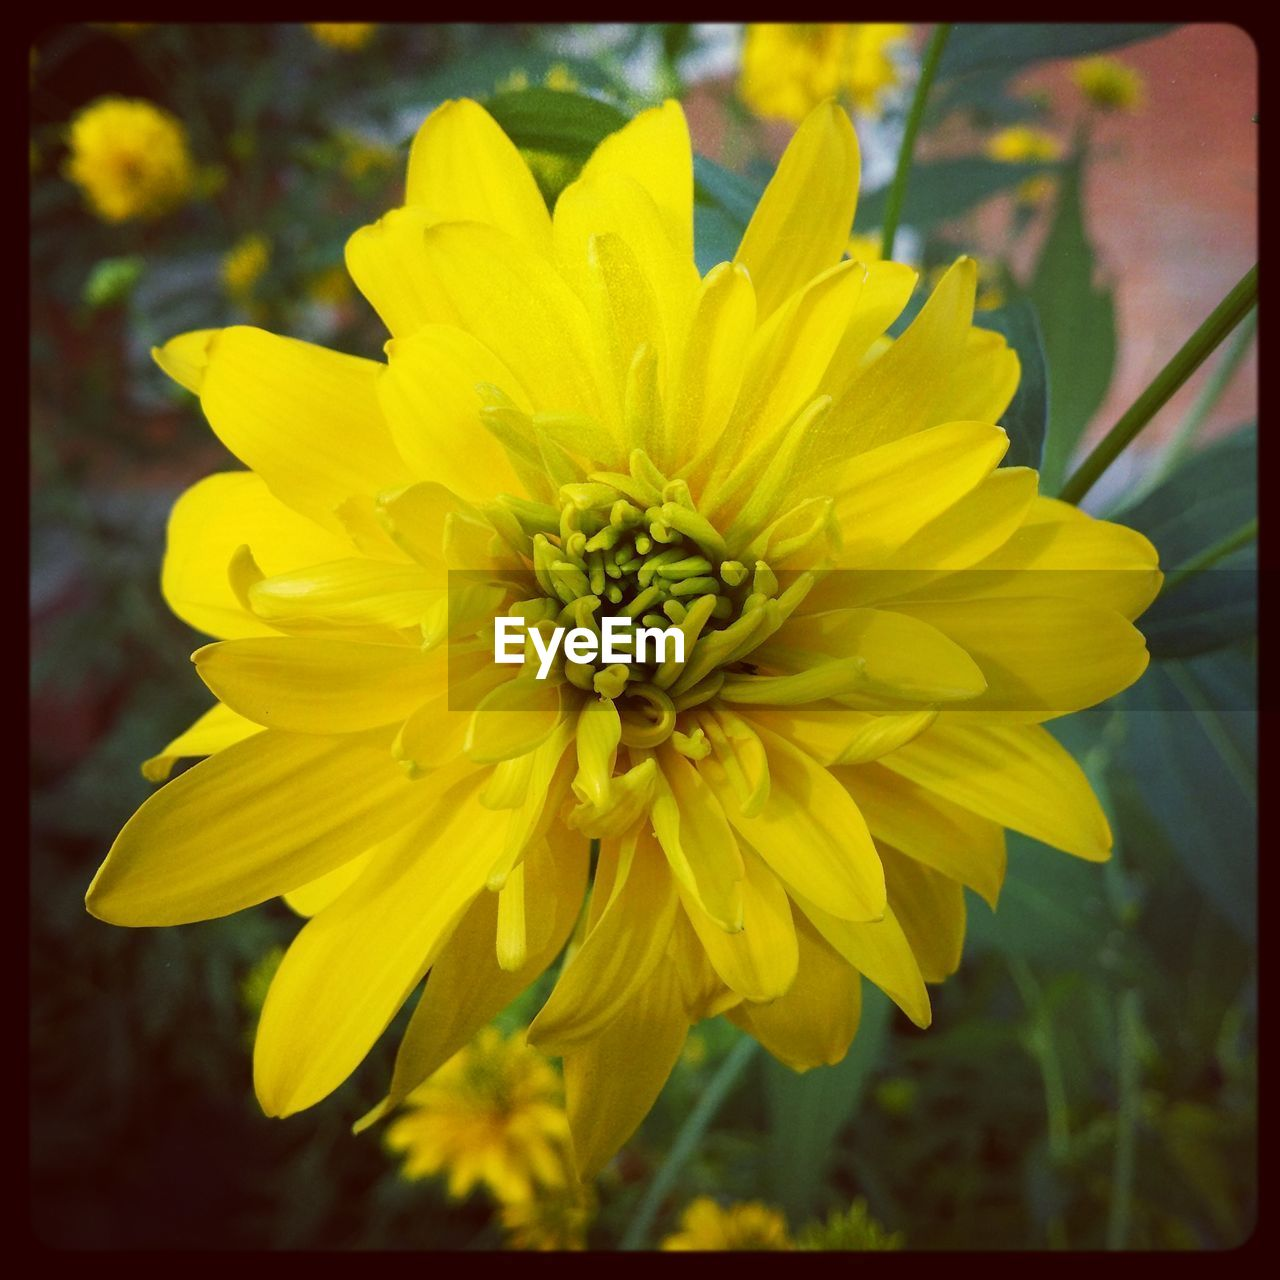 flower, yellow, petal, fragility, nature, beauty in nature, freshness, flower head, growth, plant, close-up, no people, outdoors, blooming, stamen, day